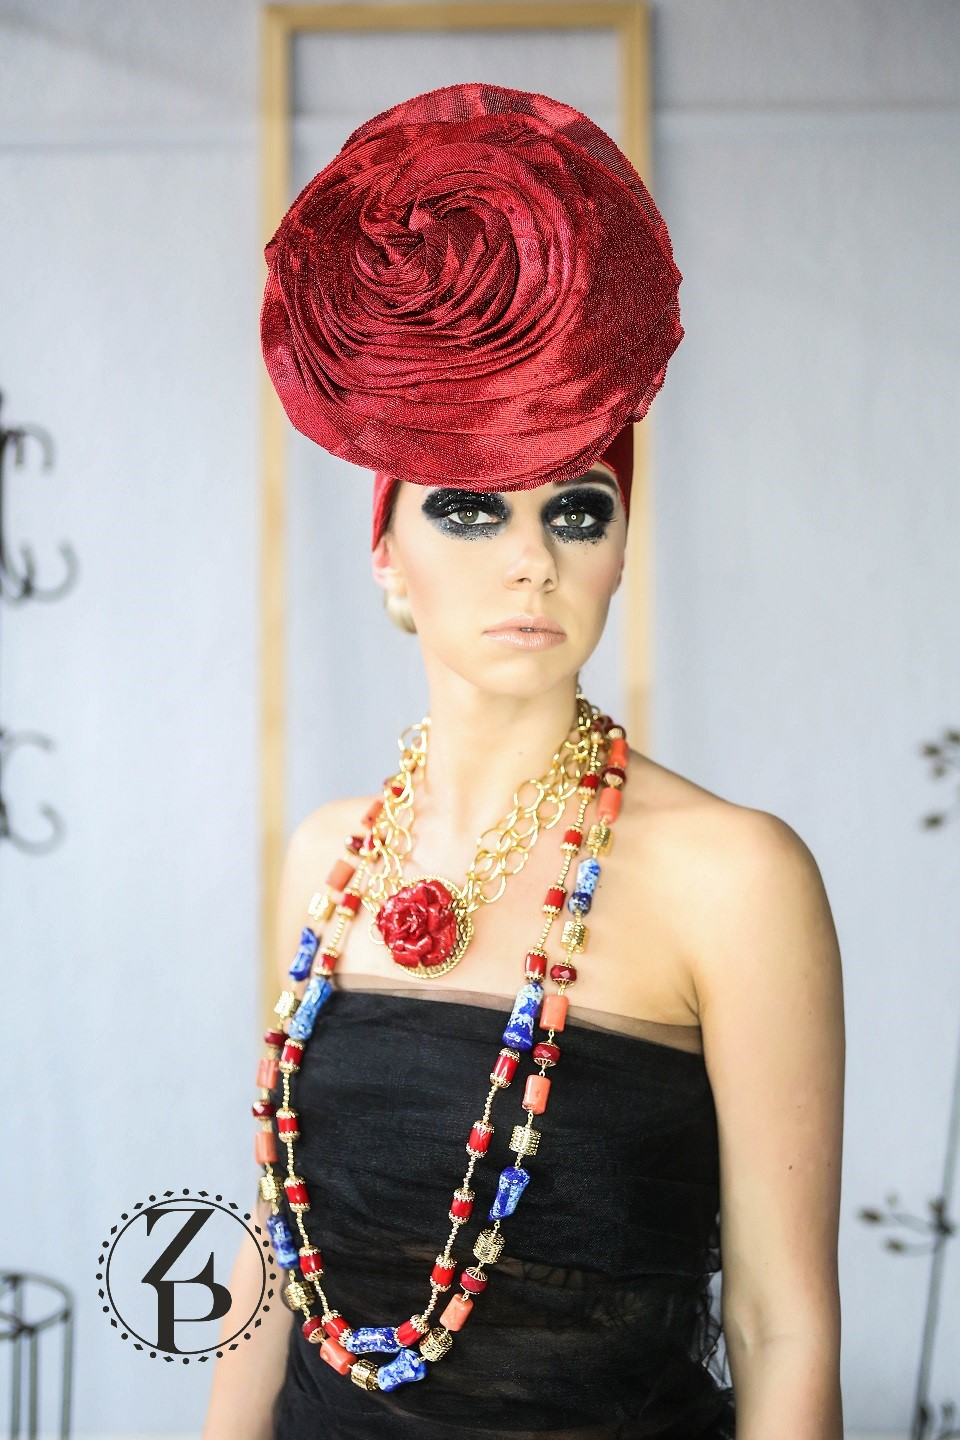 editorial-photo-shoot-bold-eye-makeup-nigerian-gele-and-coral-jewelry.jpg